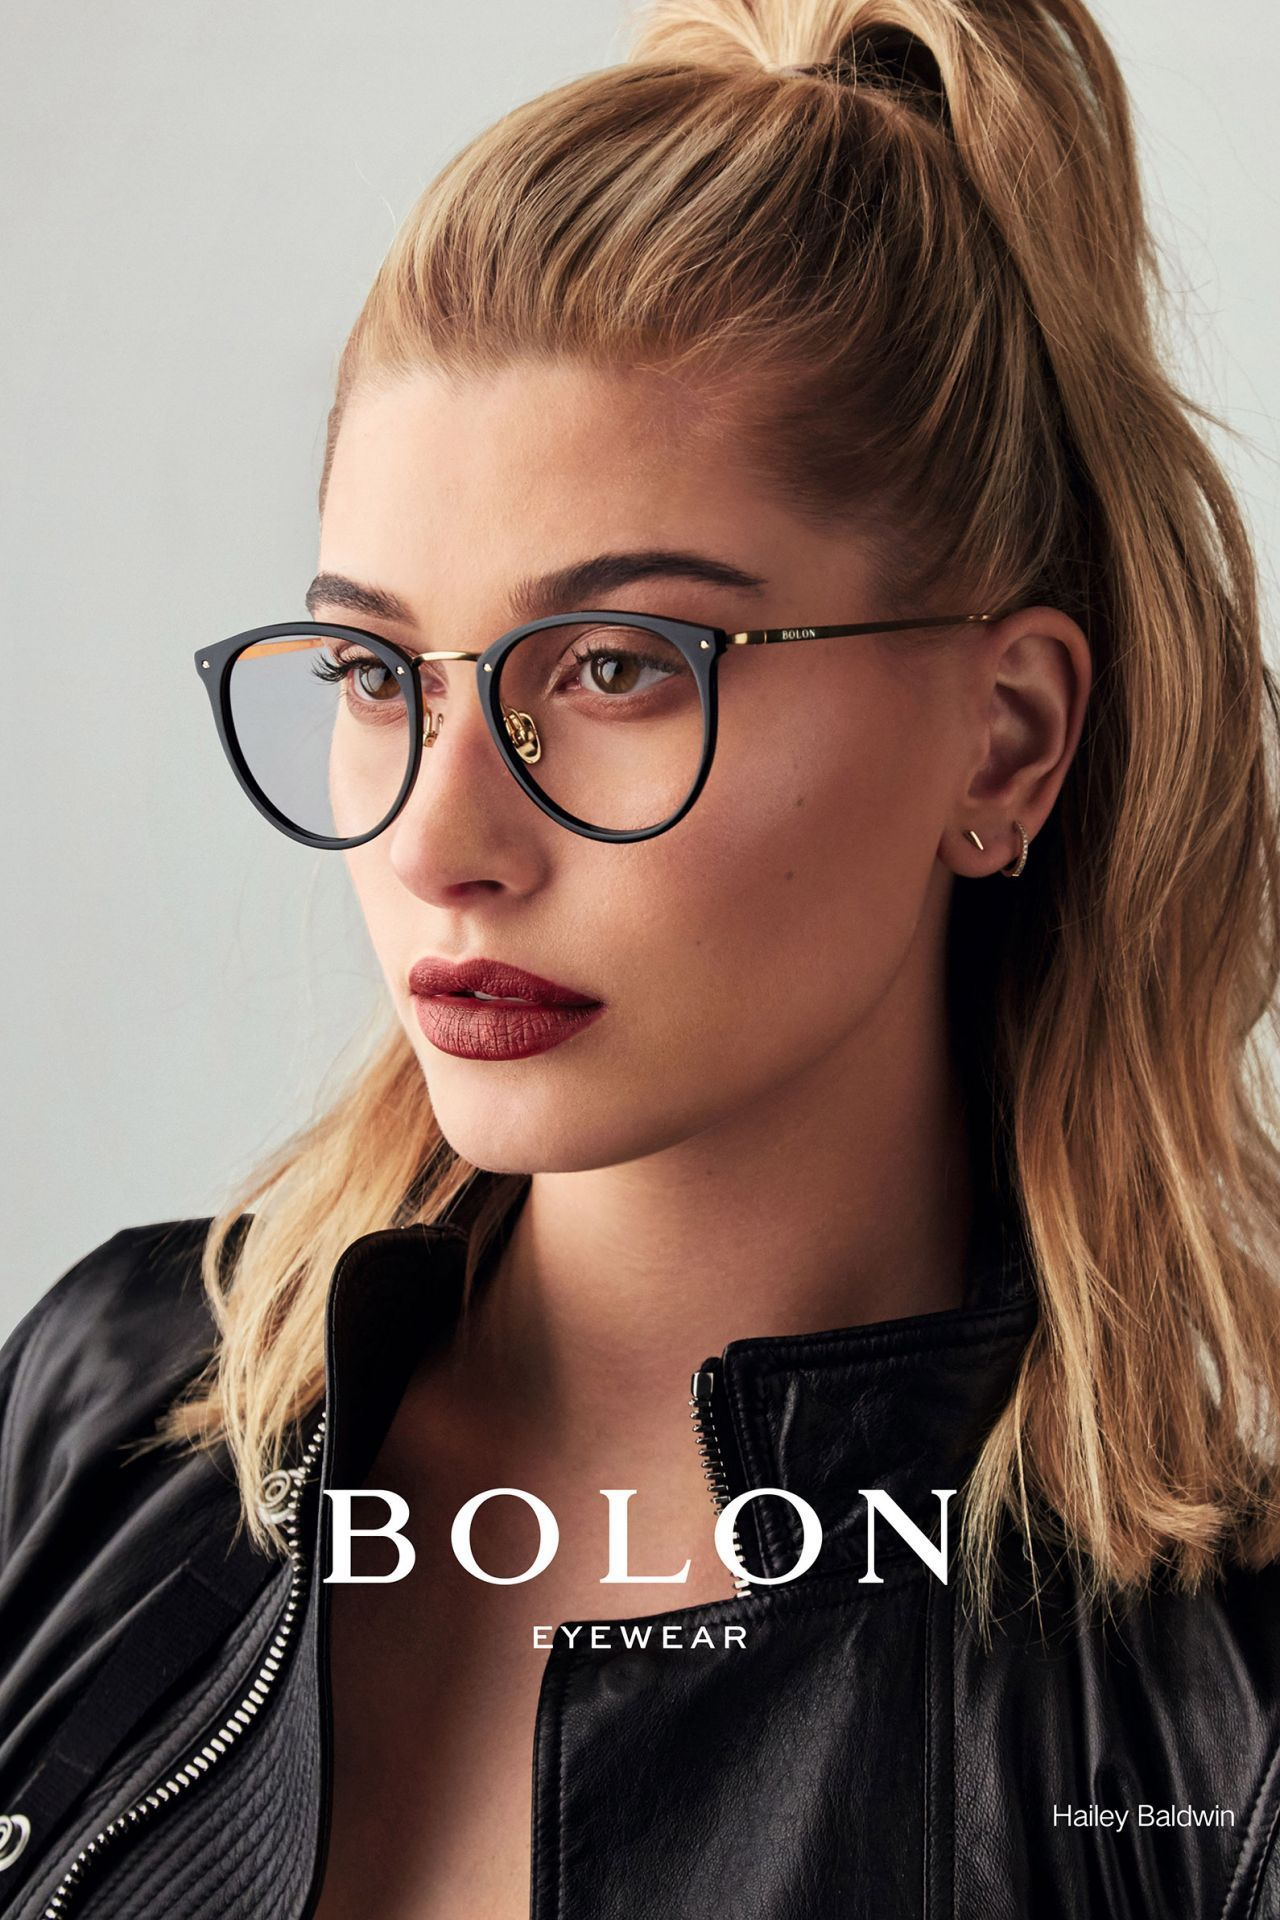 f5ed28b2dd Hailey Baldwin for Bolon Eyewear - Best sunglasses and fashion blog in one  spot. A one stop spot connecting you to the trendiest sunglasses and  hottest ...